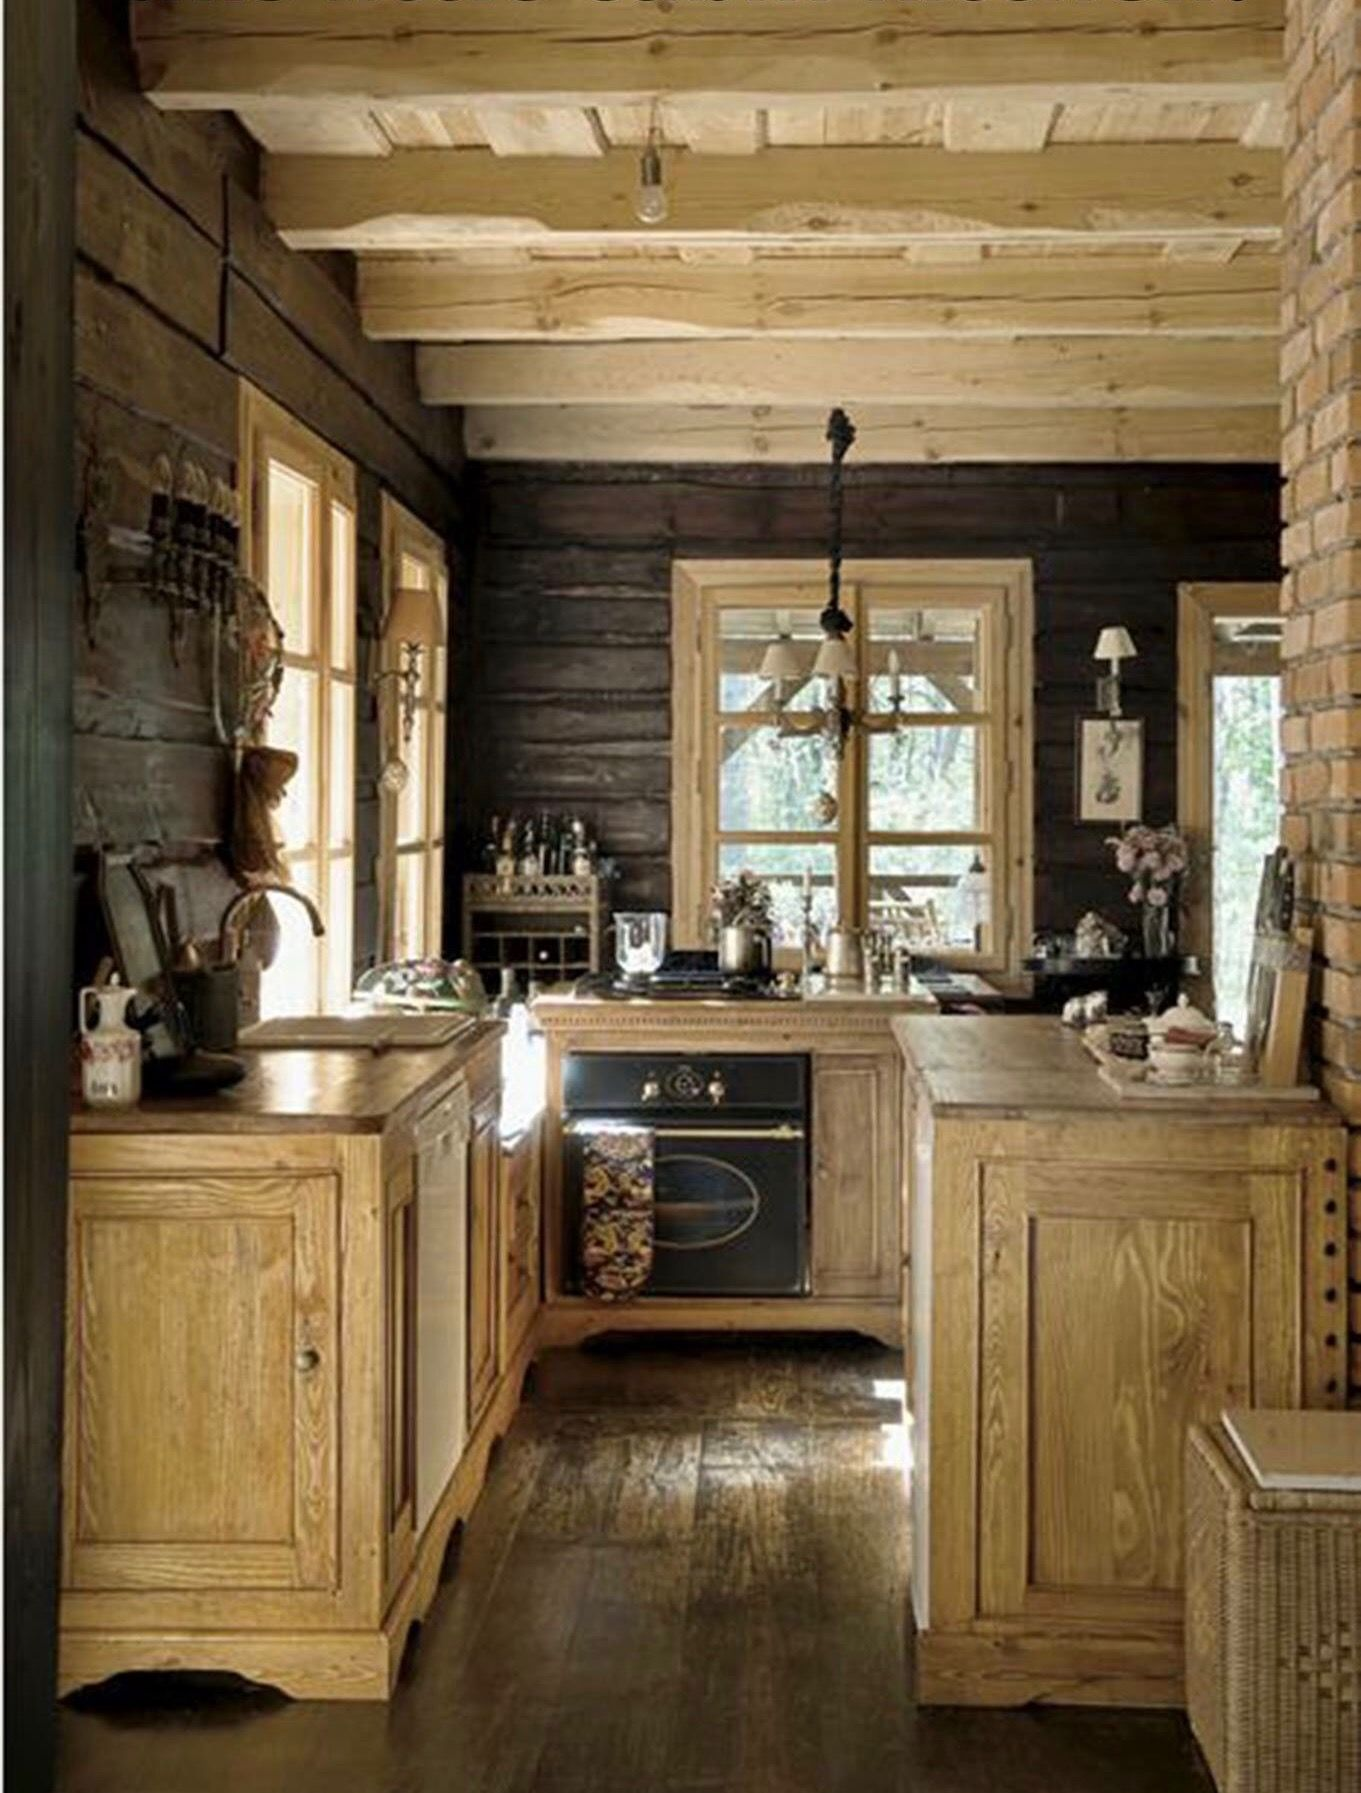 Rustic Retreat, small Rustic cabin kitchen | Log Homes | Pinterest